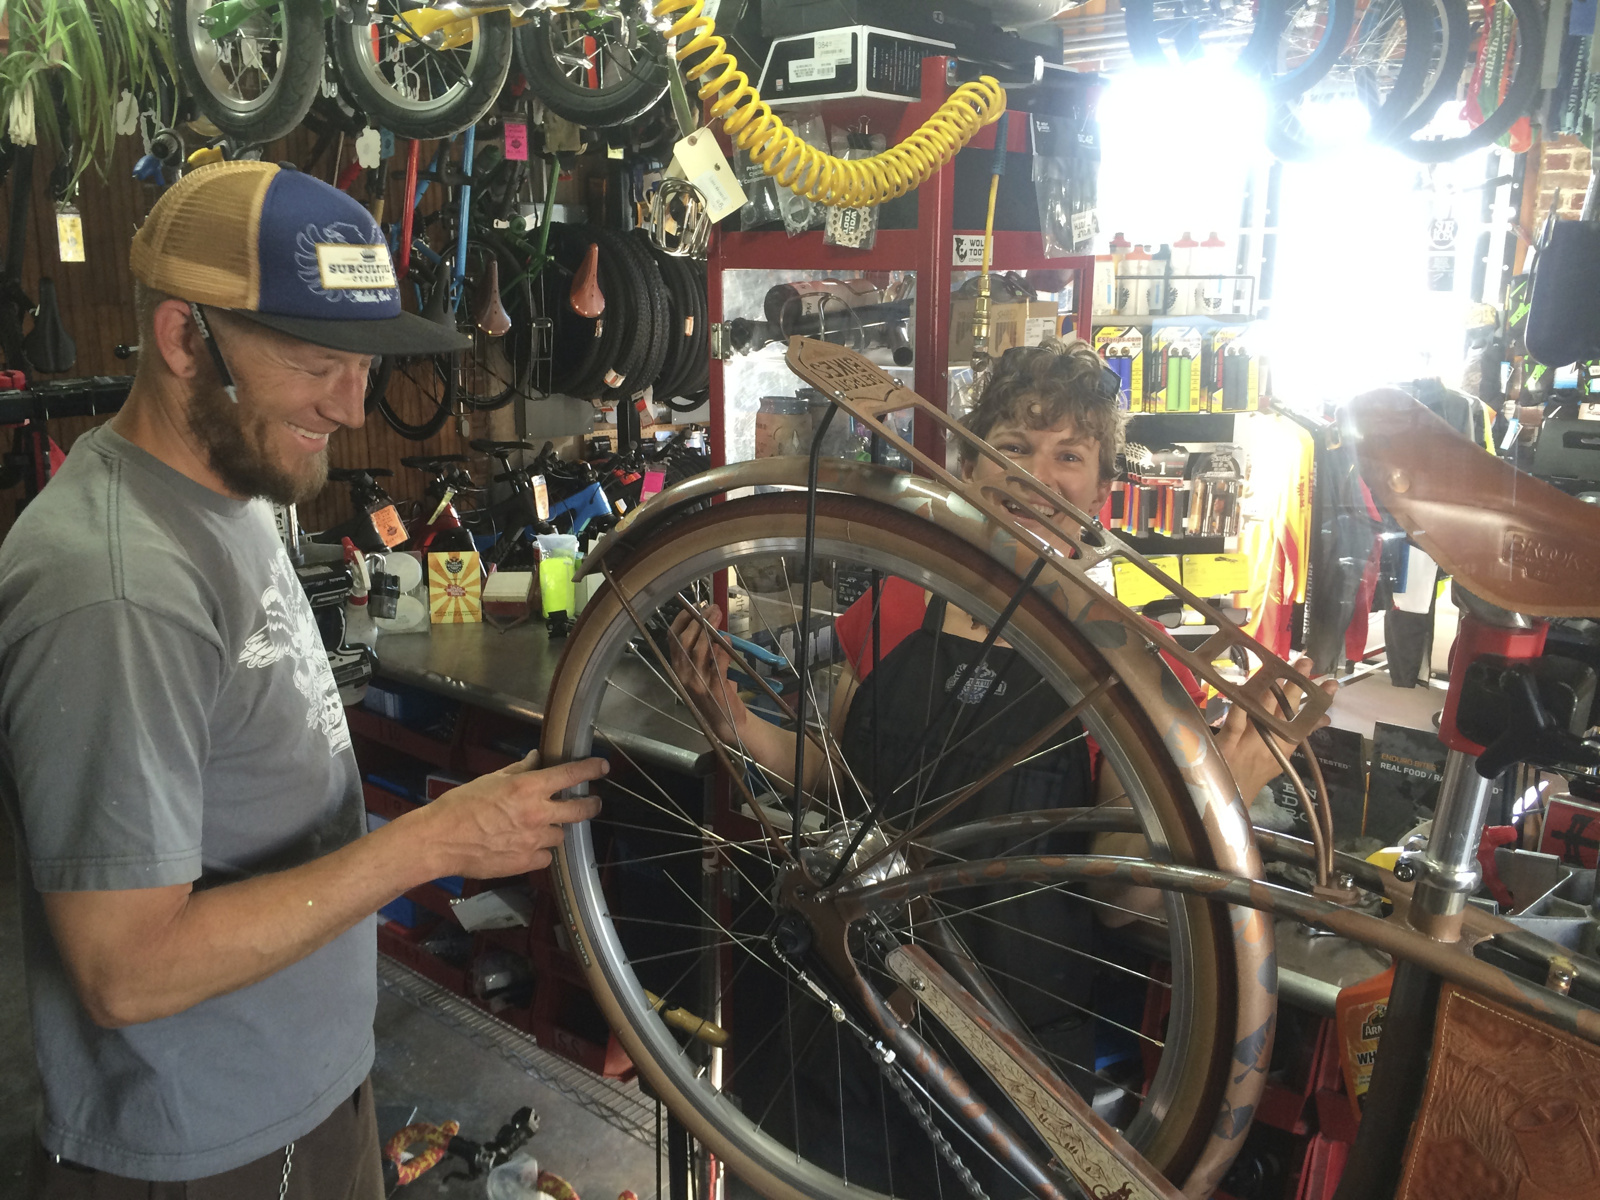 Jason and Claire at Subculture Cyclery helping fine tune the bike.